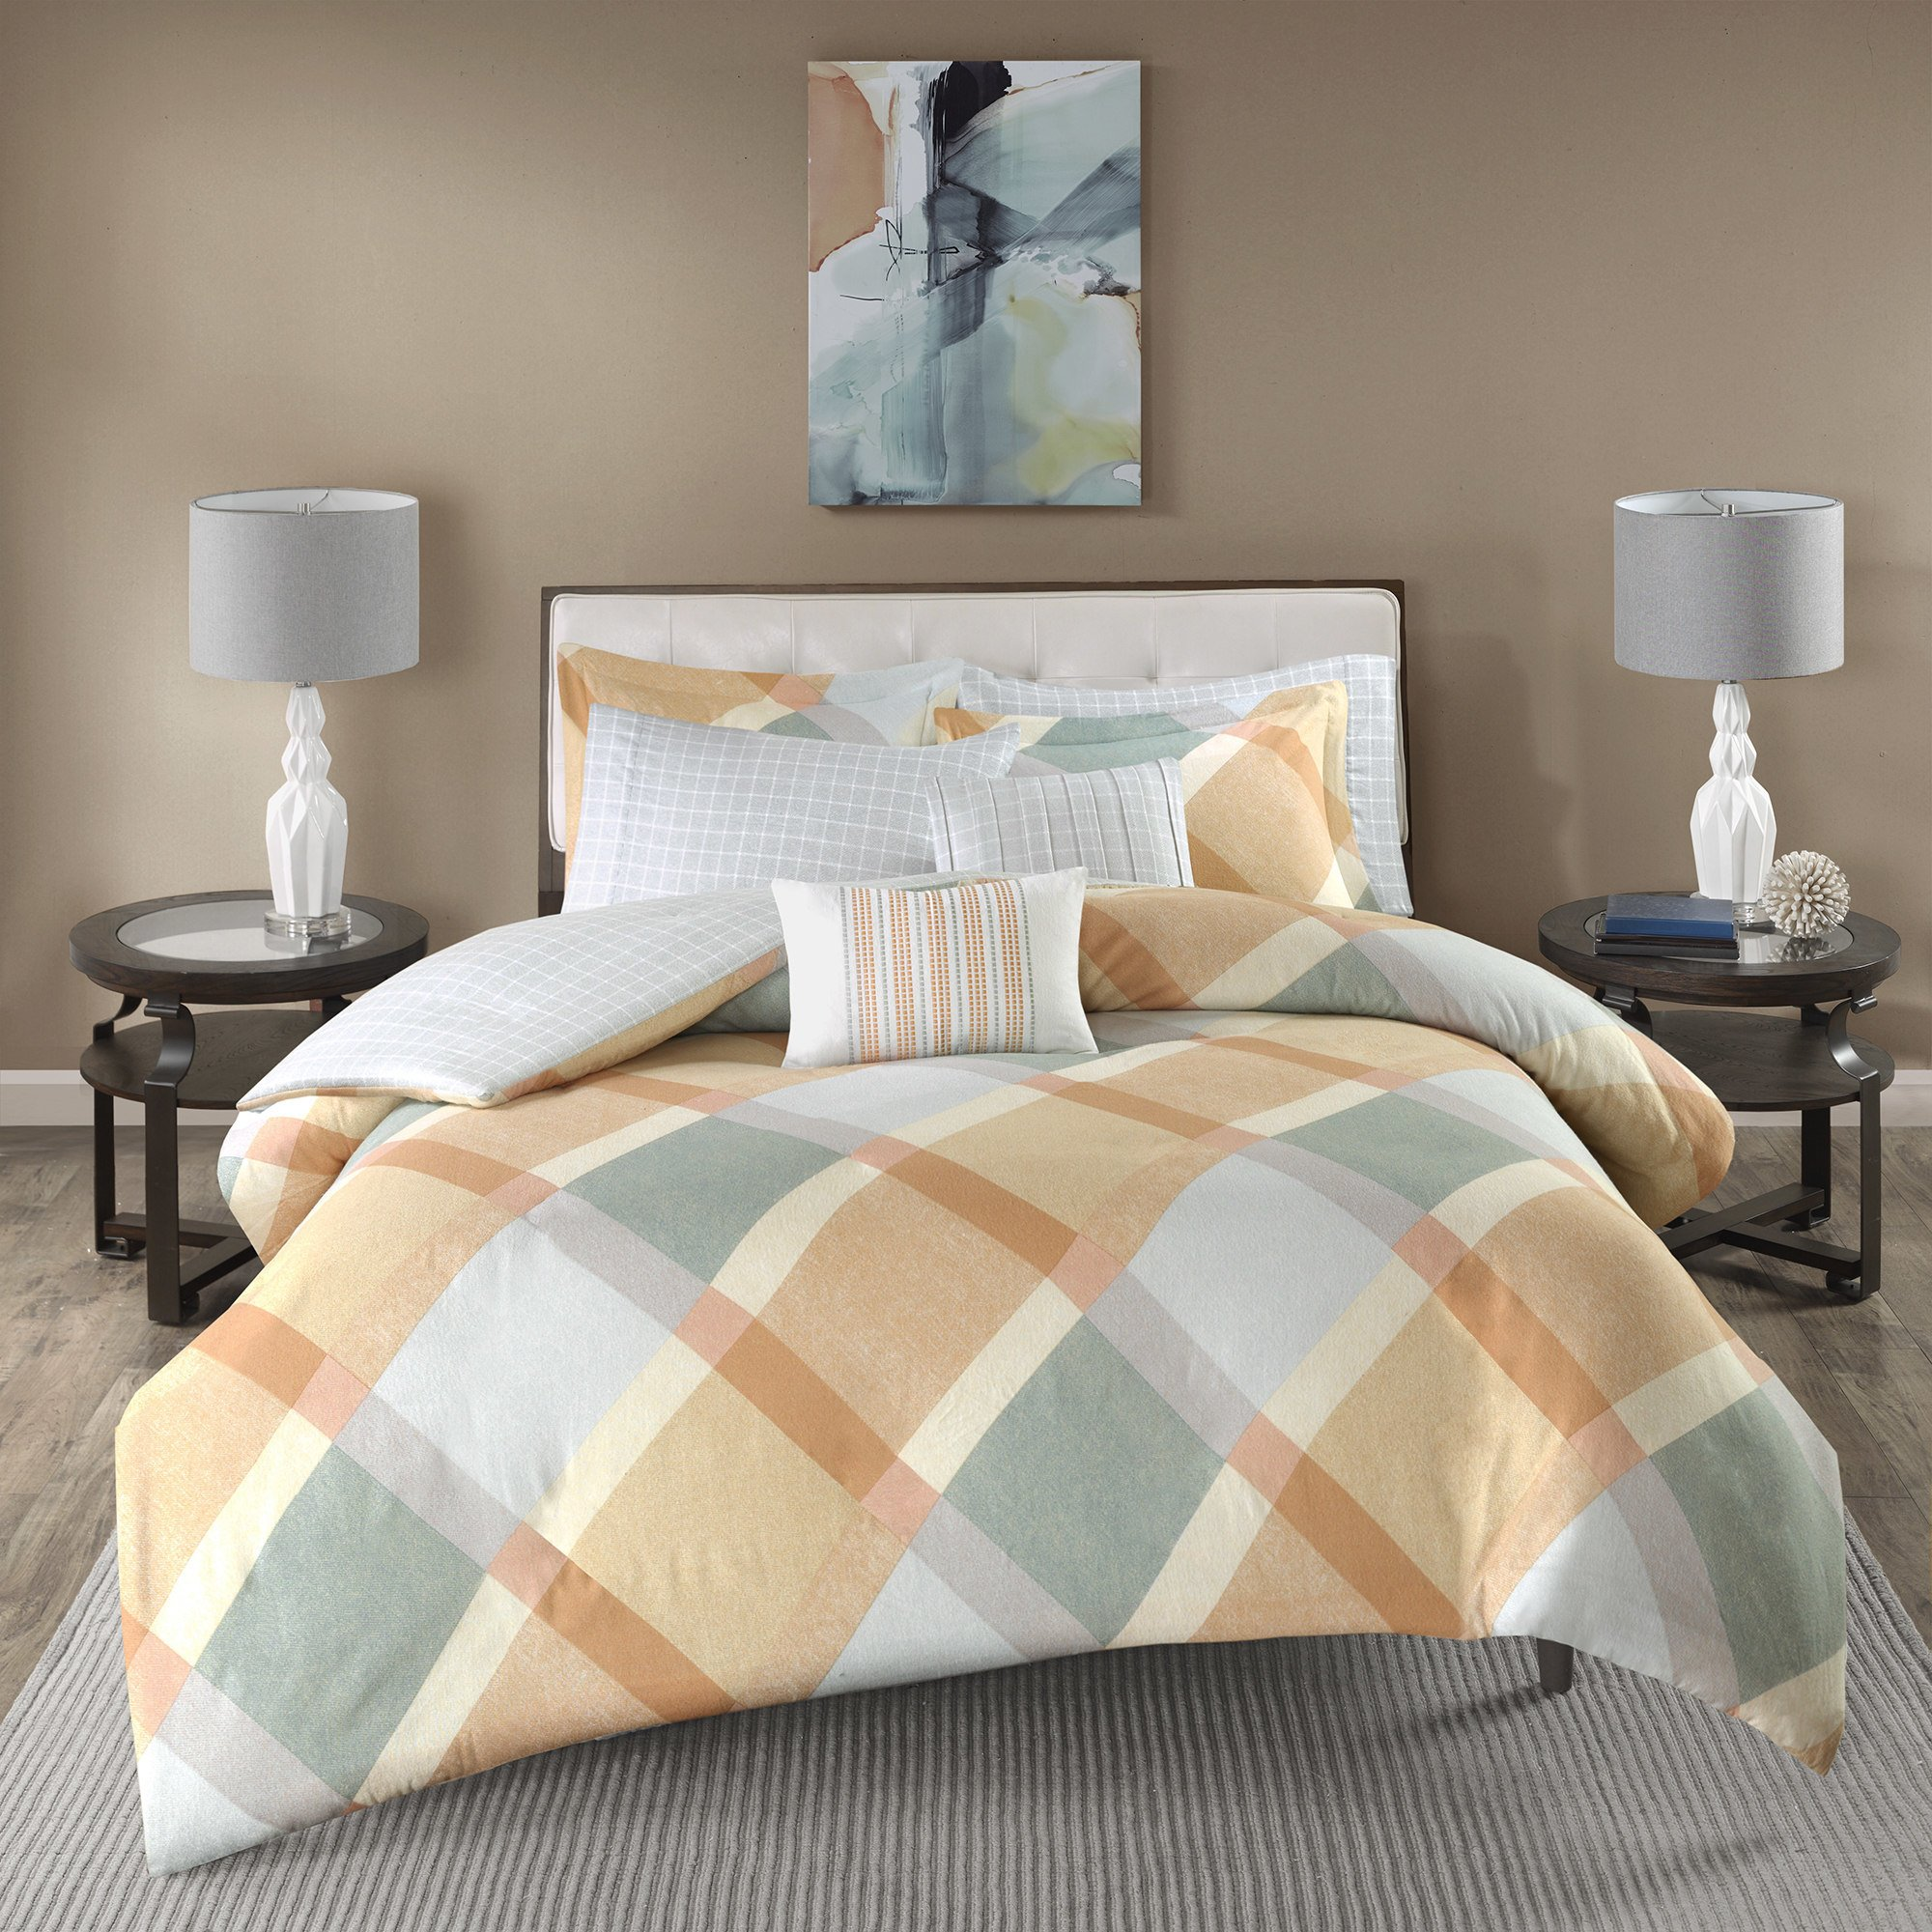 7 Piece Coral Pink Plaid Duvet Cover Full Queen, Diamond Geometric Pattern Flannel Cabin Lodge Cottage Theme Bedding, Checkered Squared Reversible Windowpane Casual Modern Sleek Trendy, Cotton